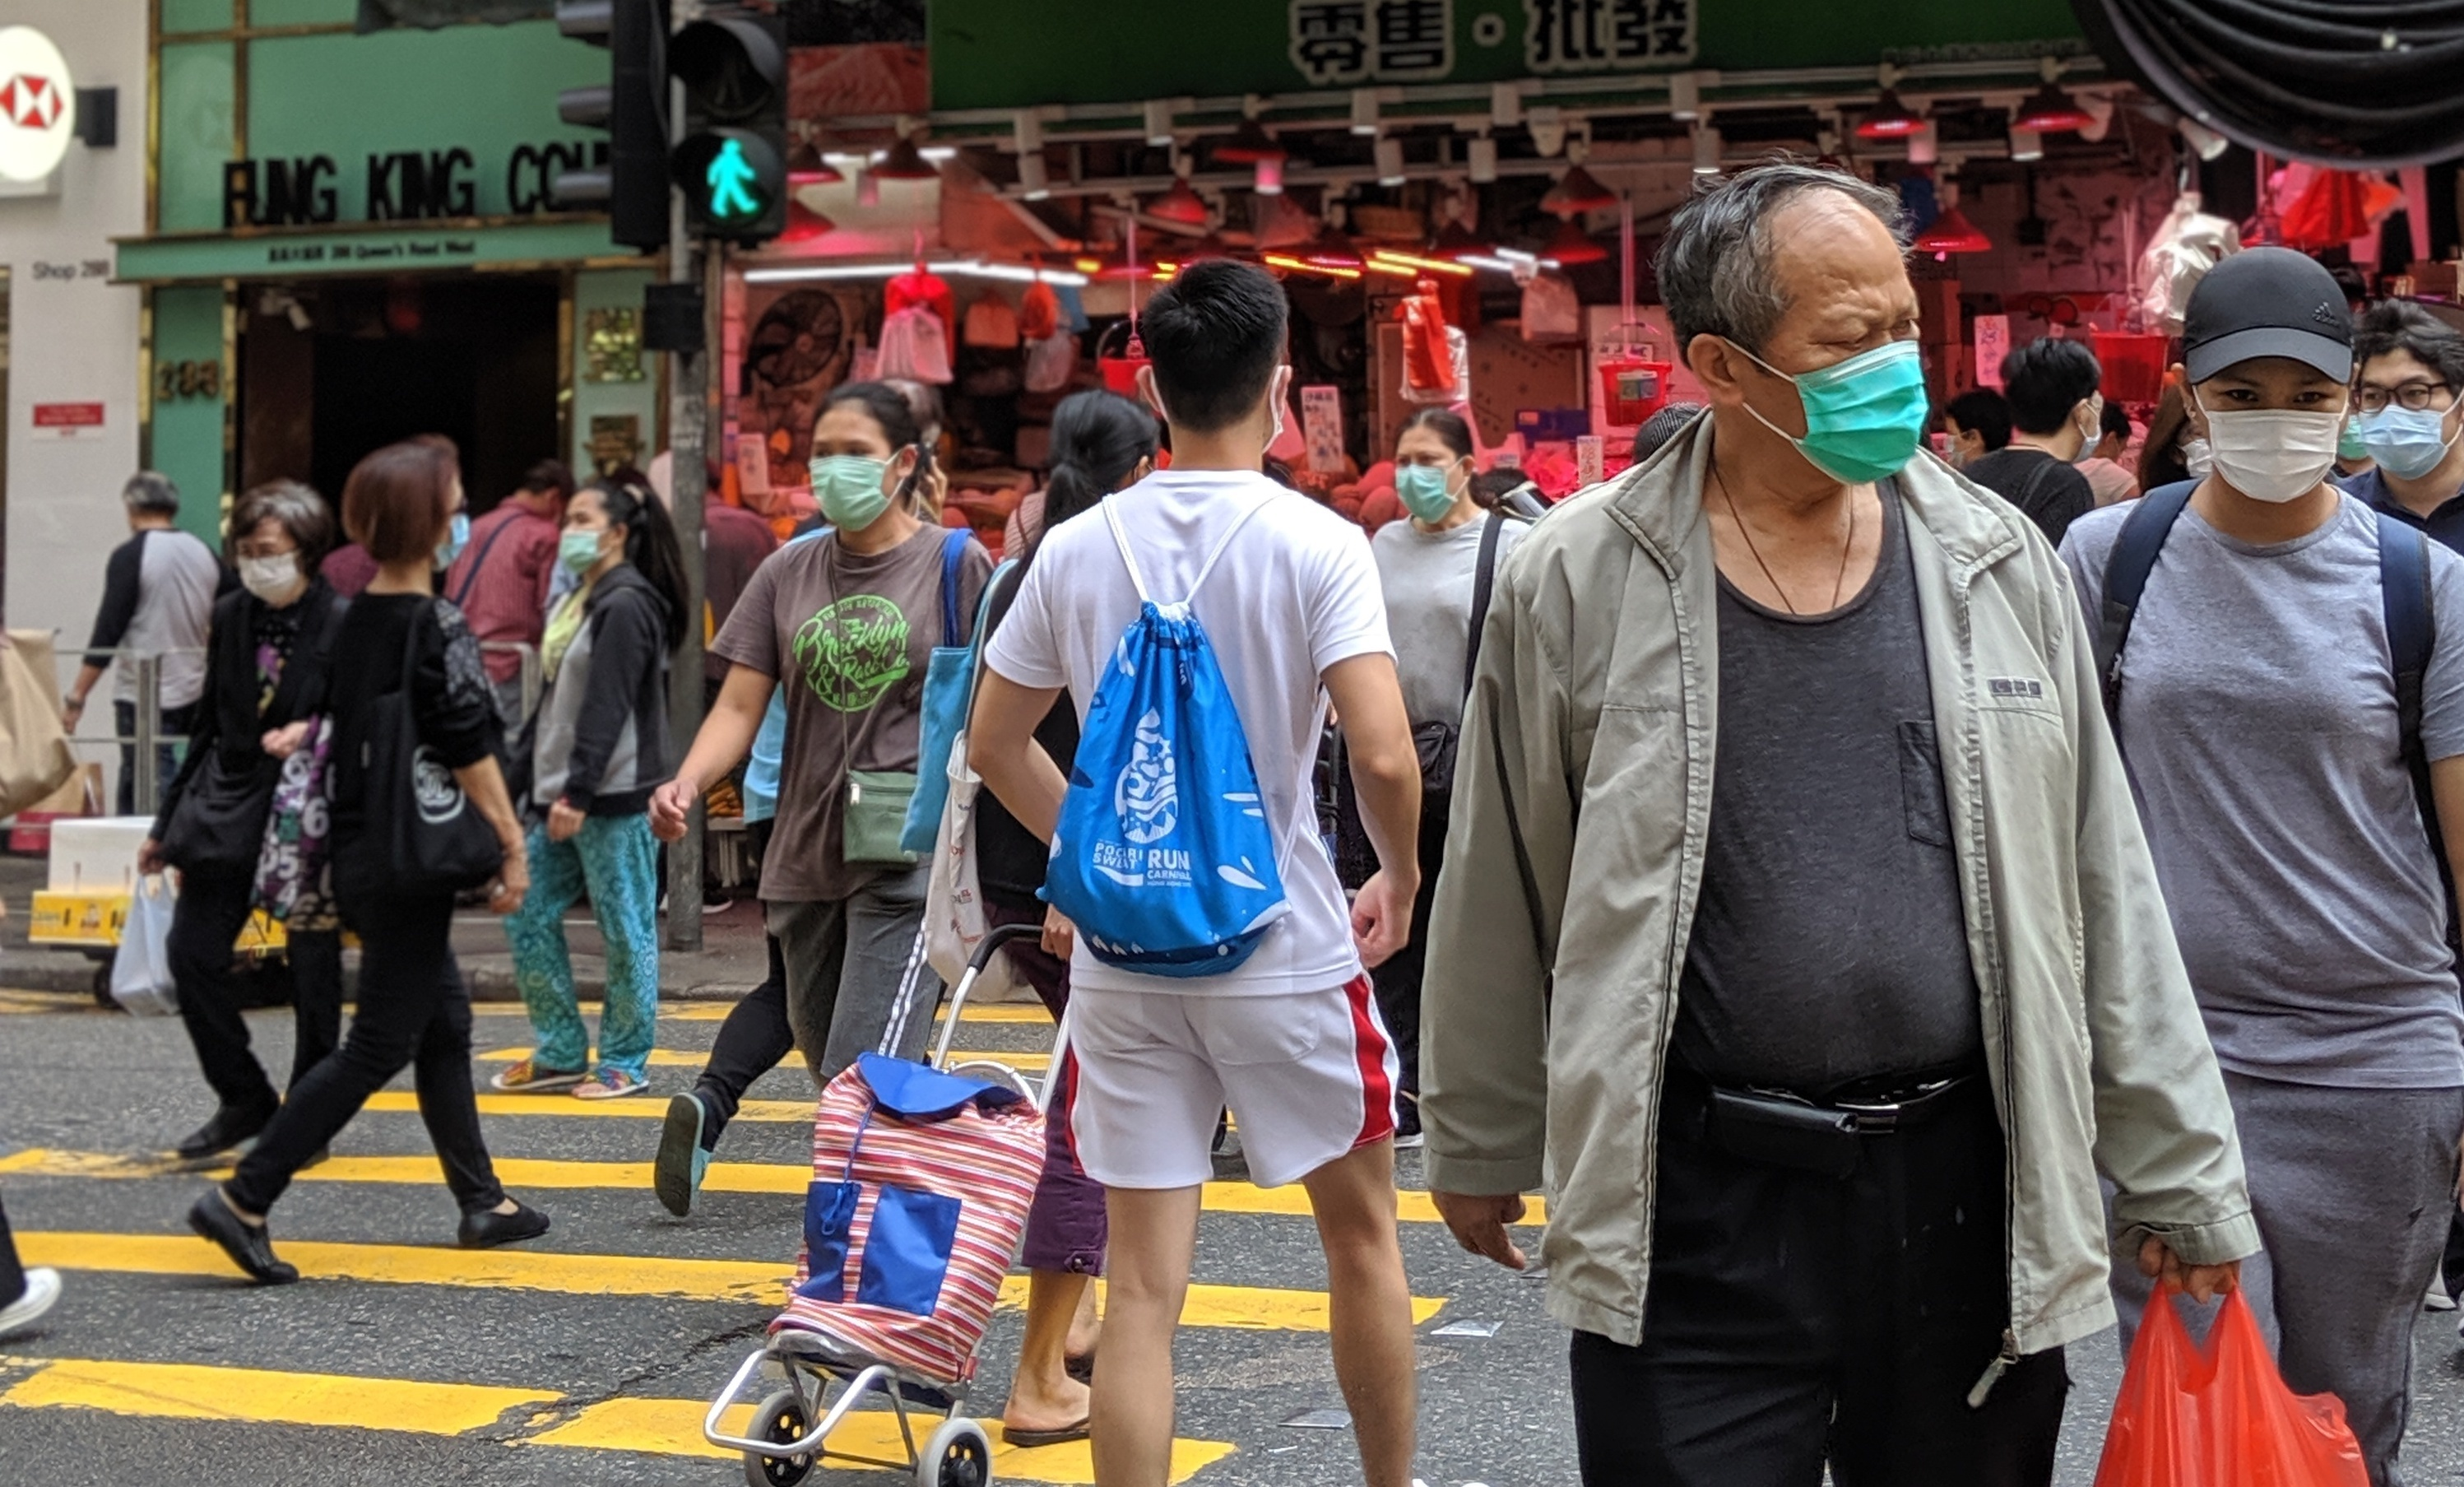 pedestrians crossing the road in Sai Ying Pun